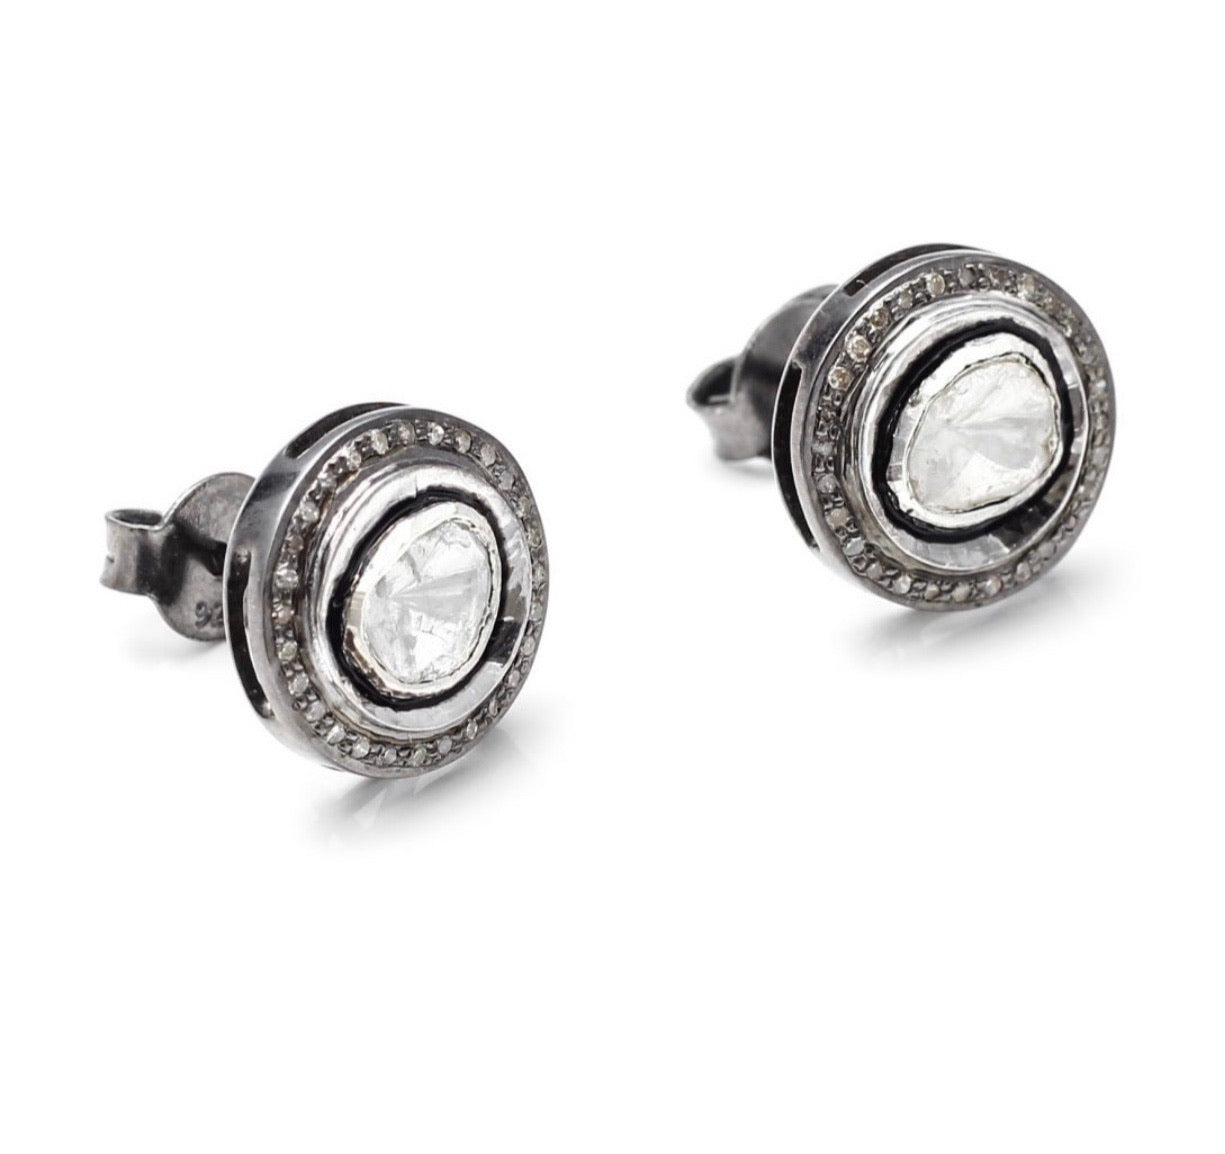 S.Row Designs Round Diamond Studs